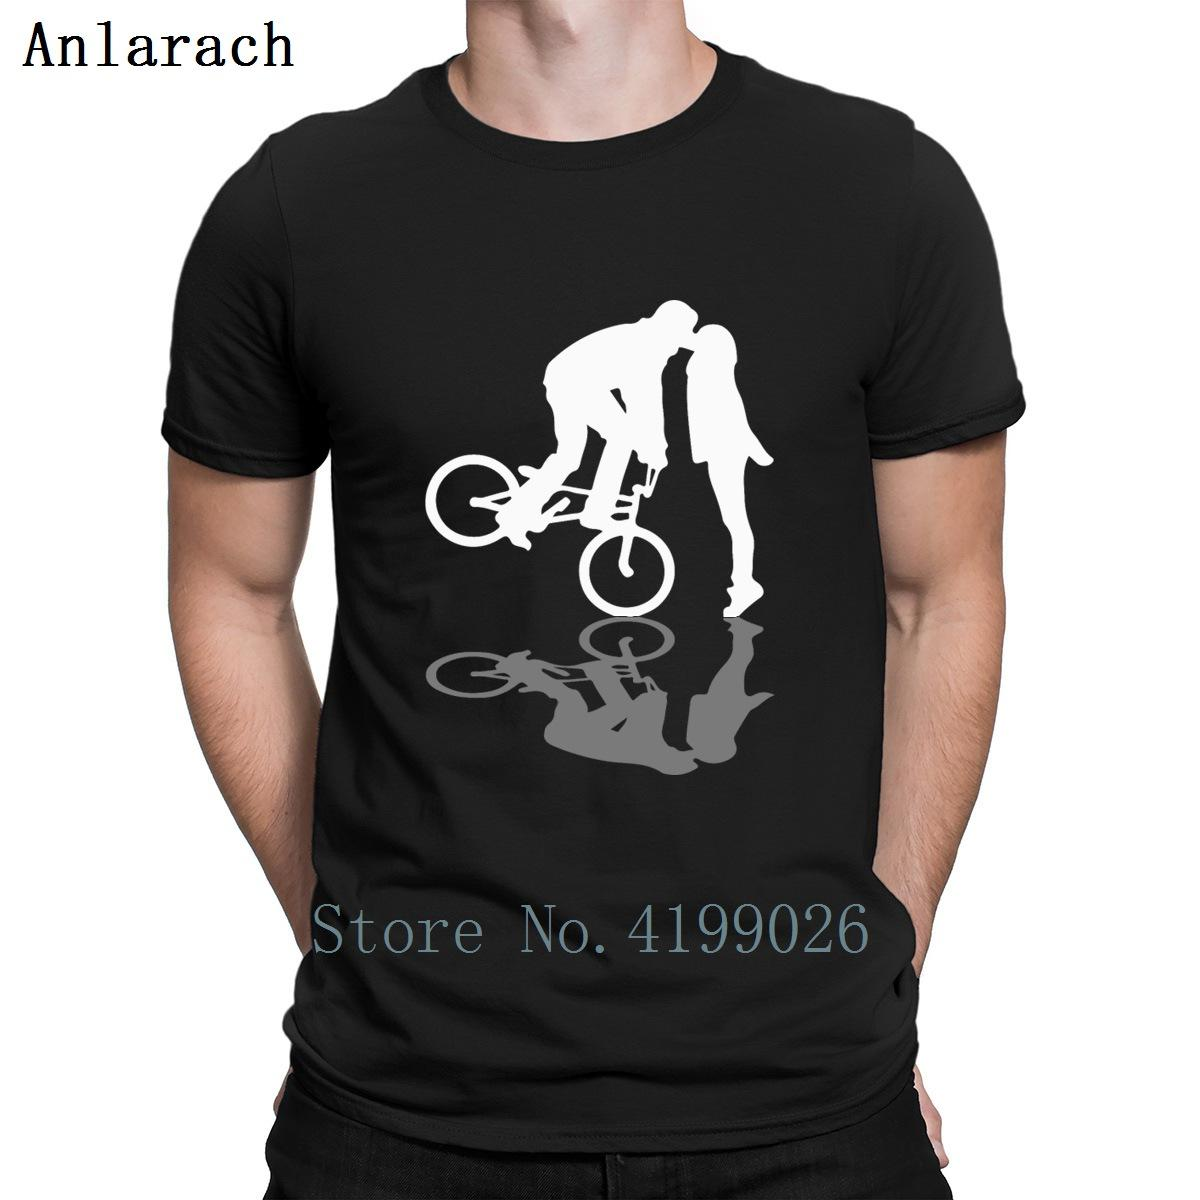 6c2ac15b Bmx Love Bicycles Tshirts Create Round Neck Spring Male Men's Tshirt Free  Shipping Tee Top Nice Anlarach Letters